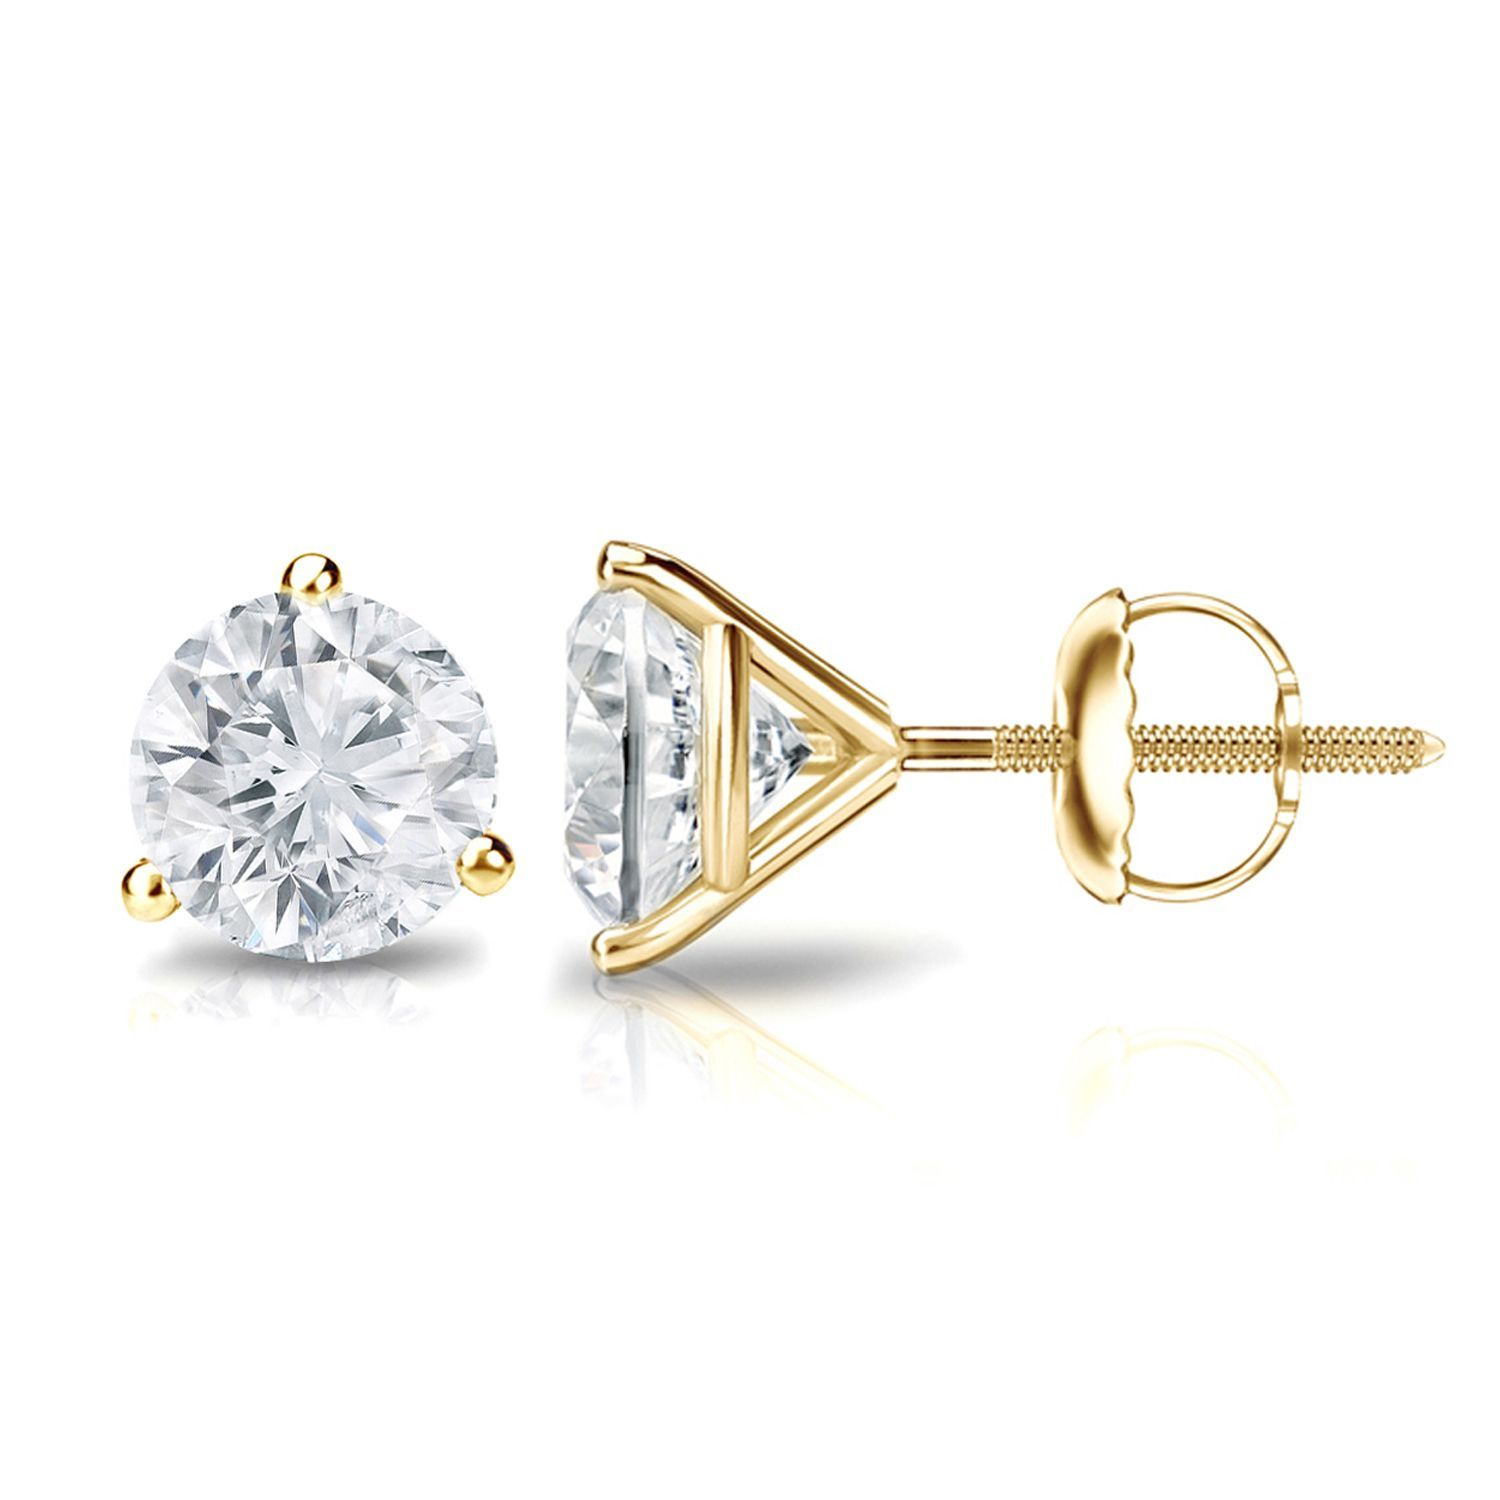 jewelers shop set studs kravit stud earrings prong martini diamond gold